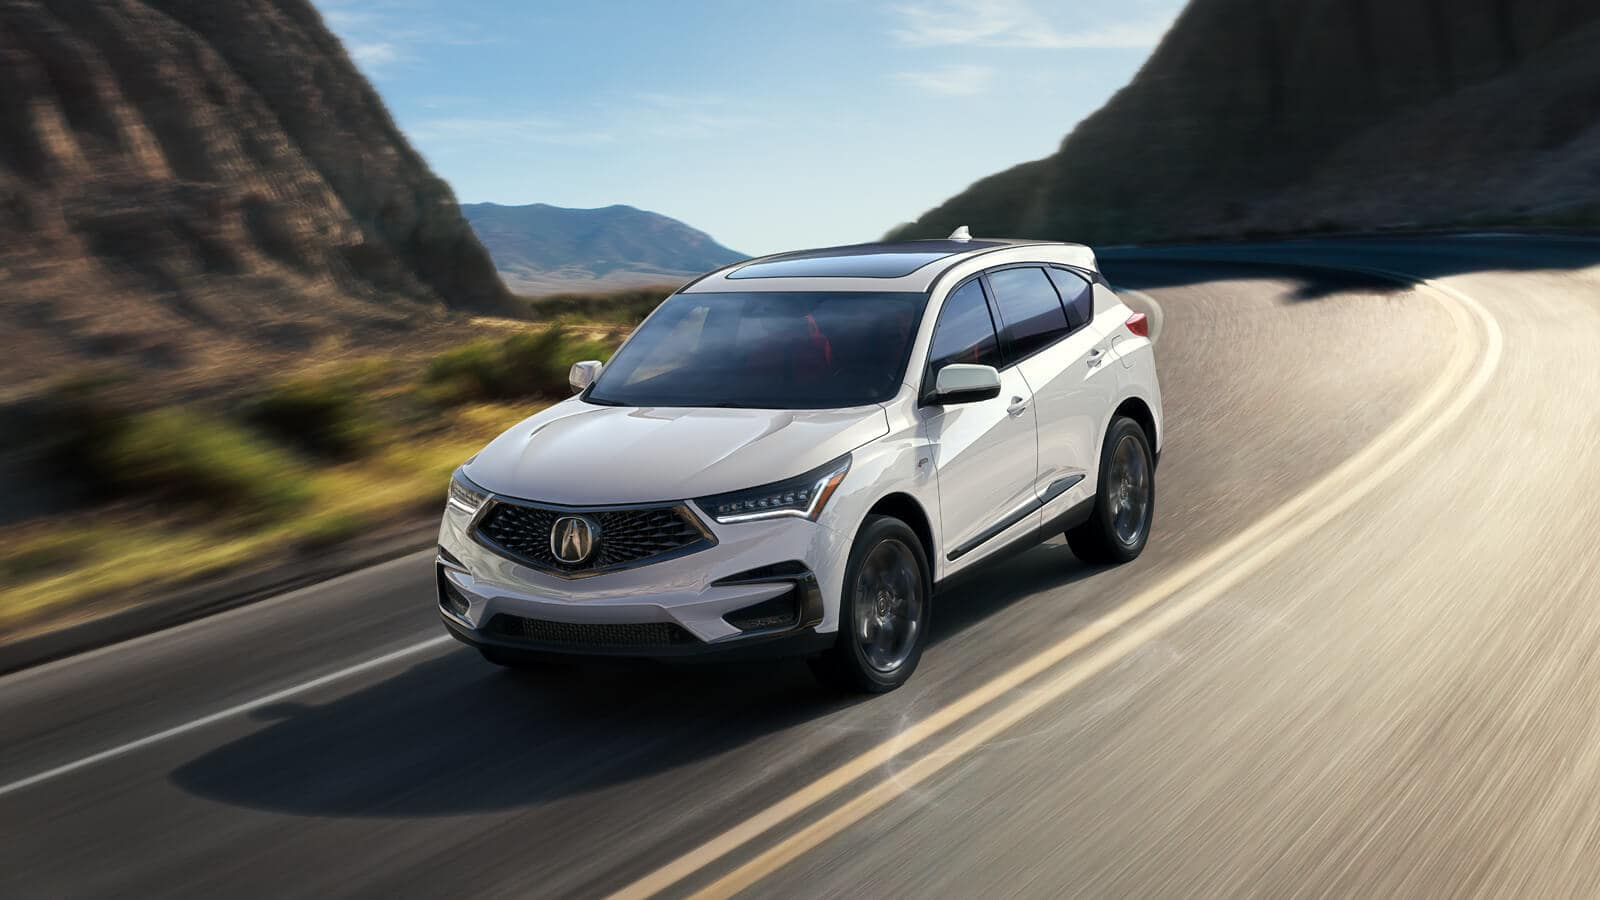 2020 Acura Rdx Luxury Crossover Suv In Colorado Rocky